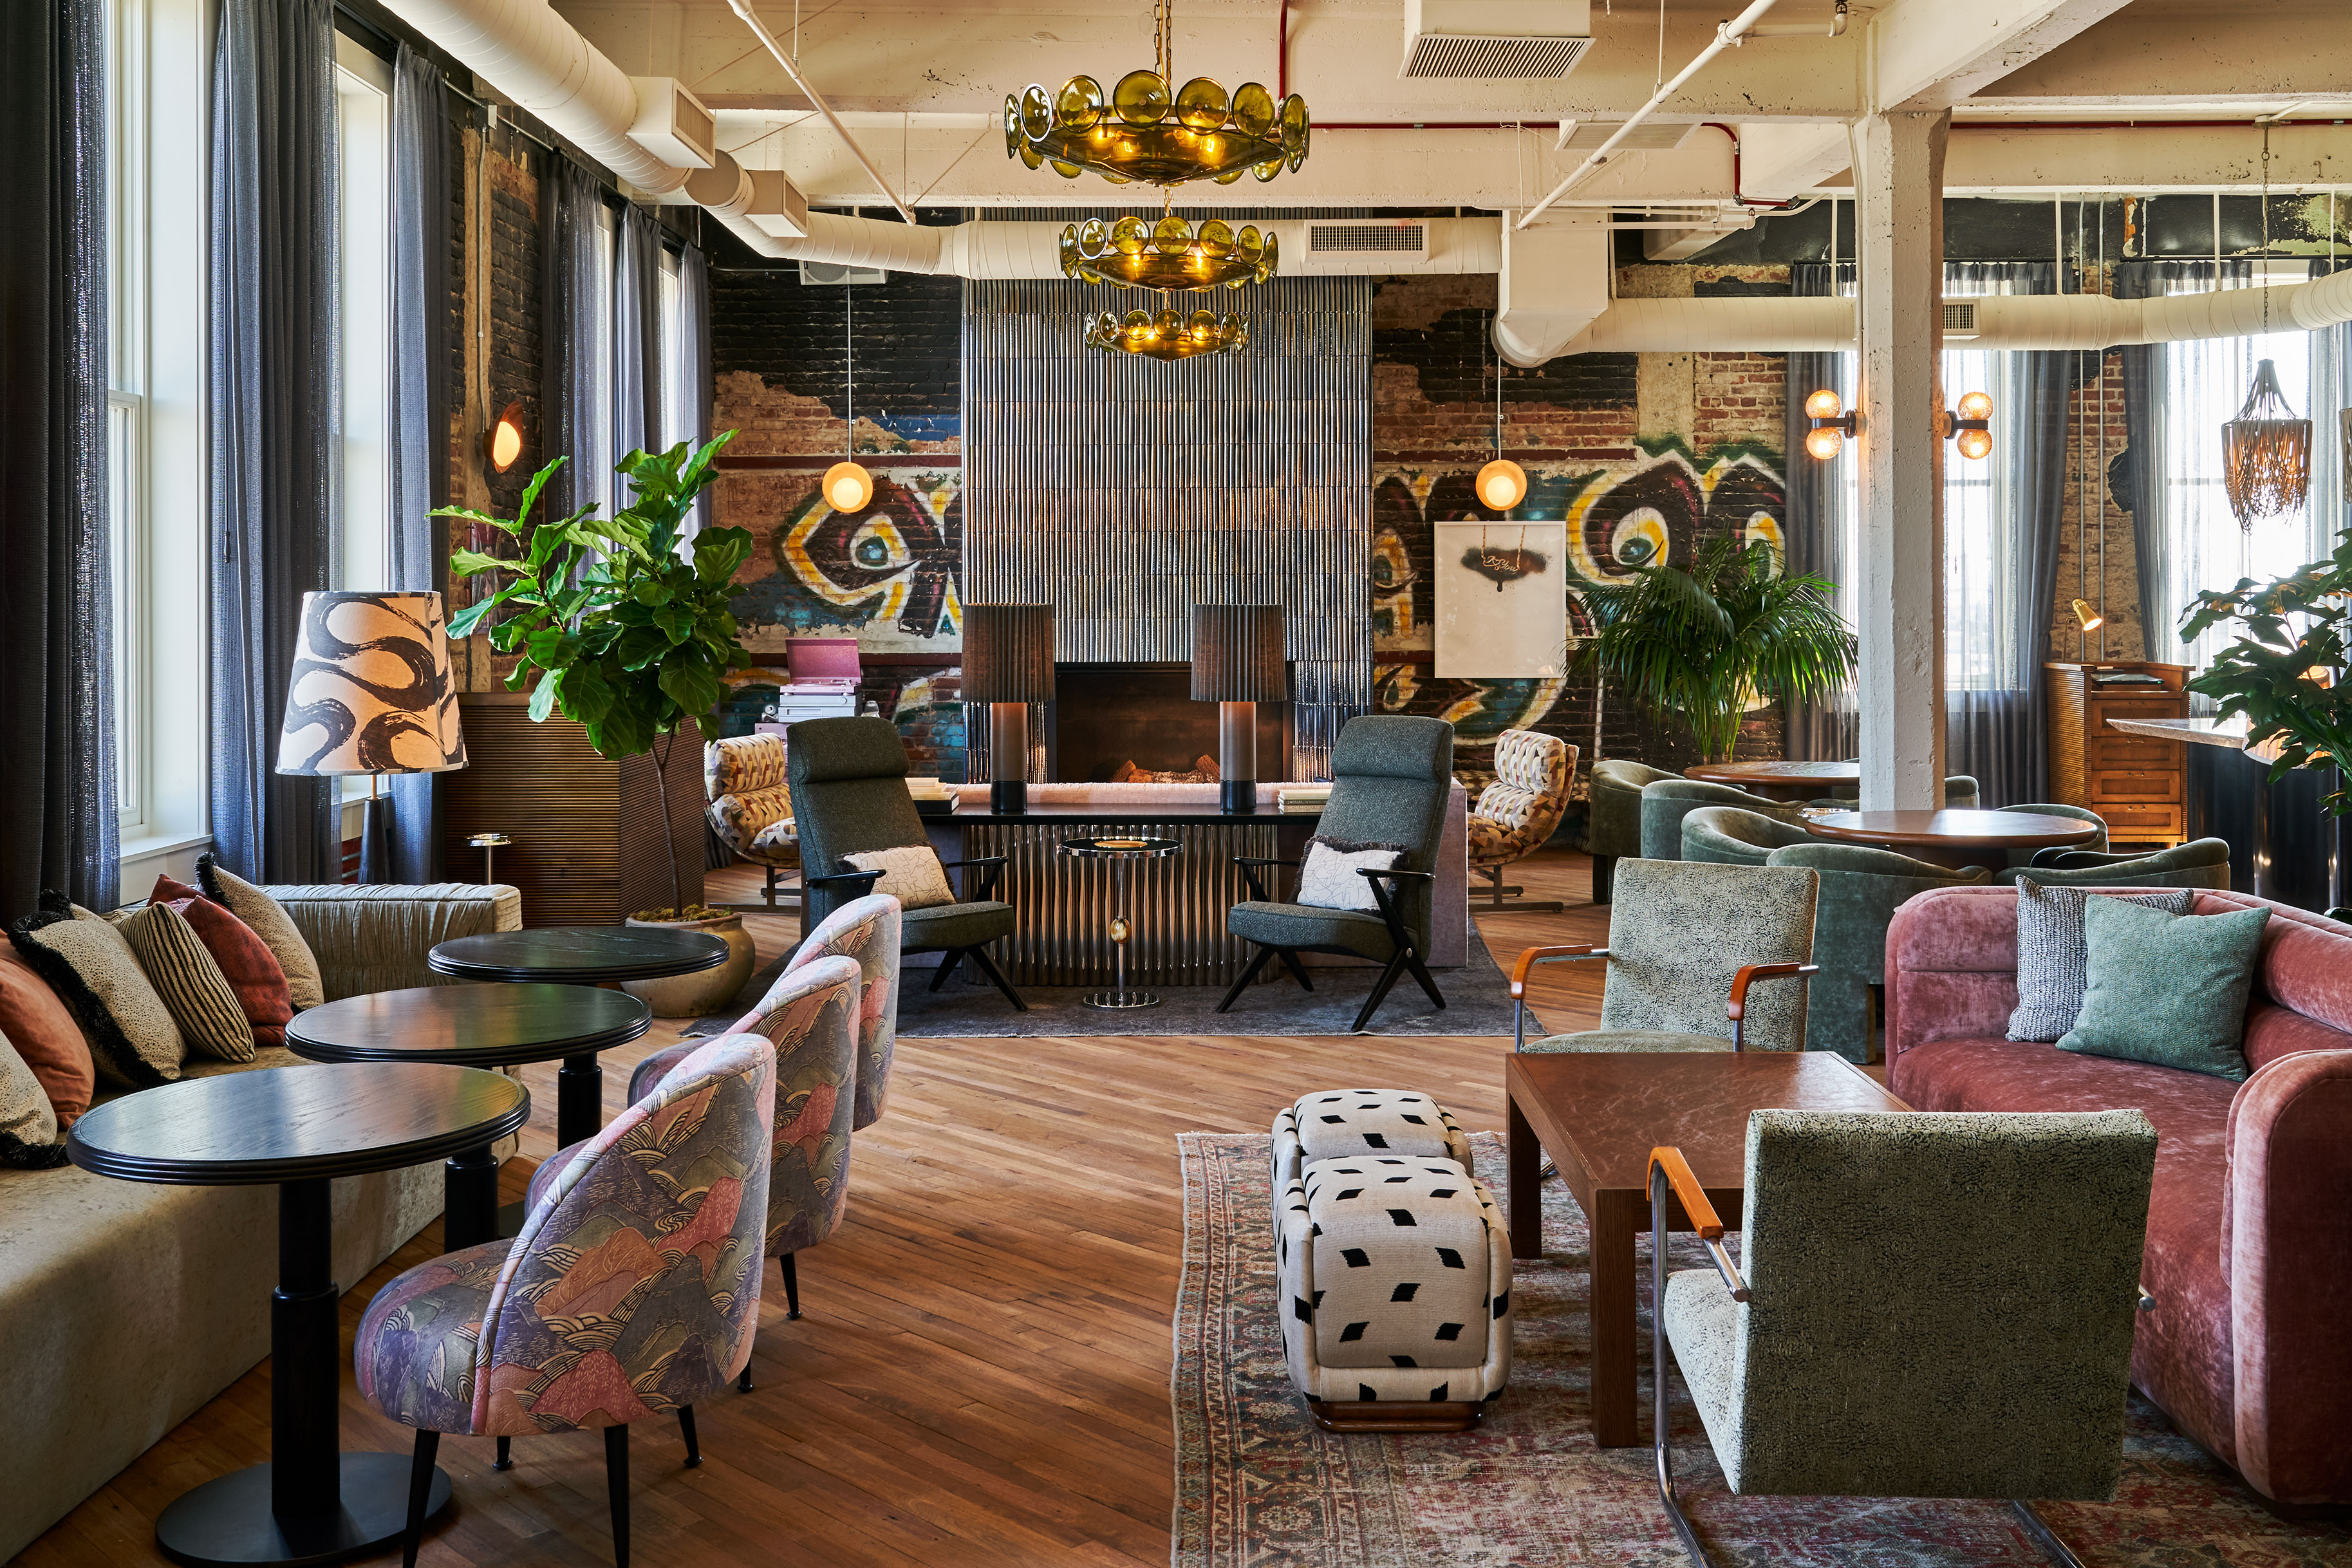 A First Look at Soho Warehouse, Soho House's newest outpost.